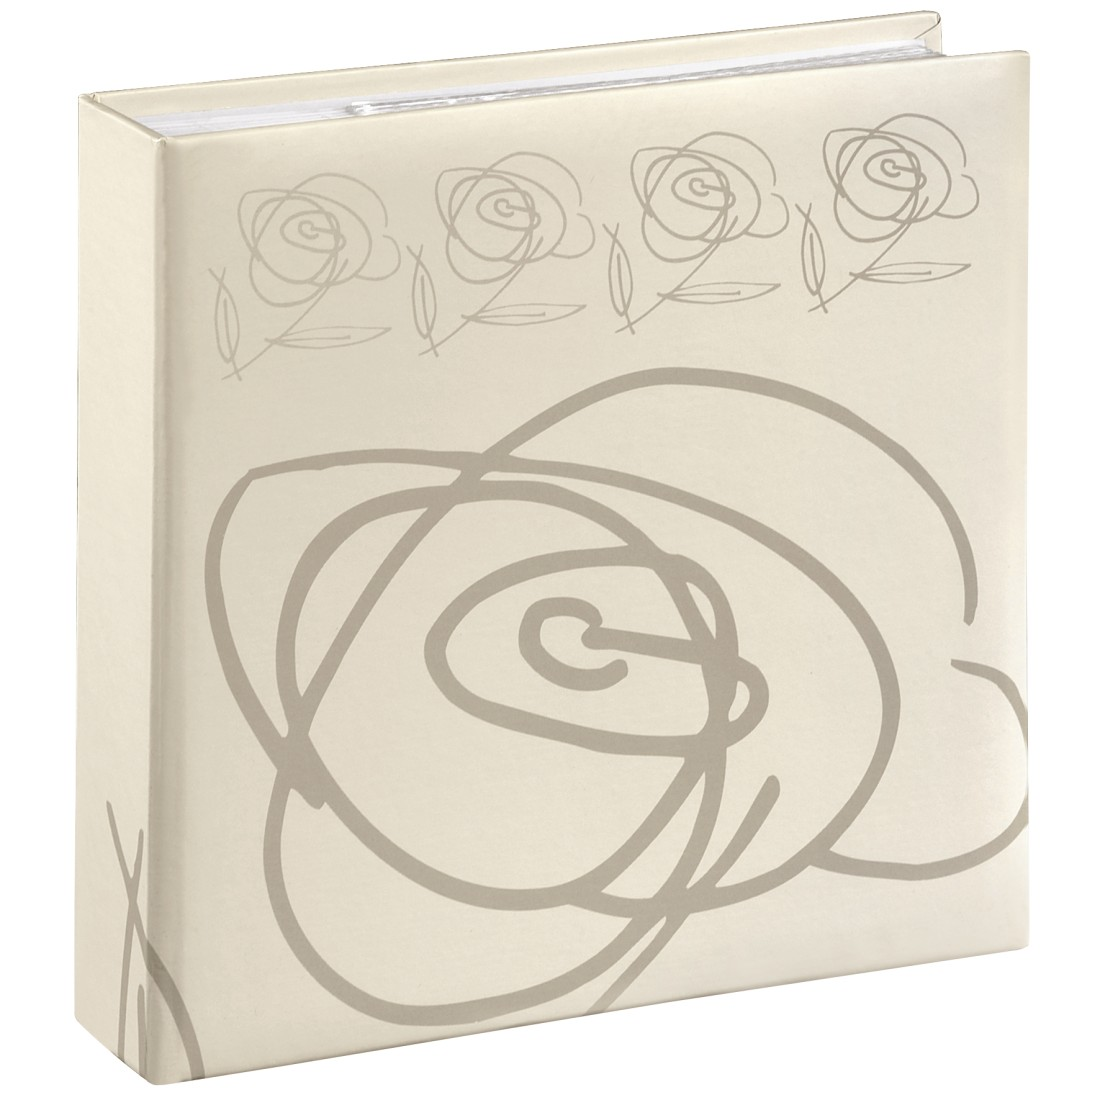 abx High-Res Image - Hama, Wild Rose Memo Album, for 200 photos with a size of 10x15 cm, white